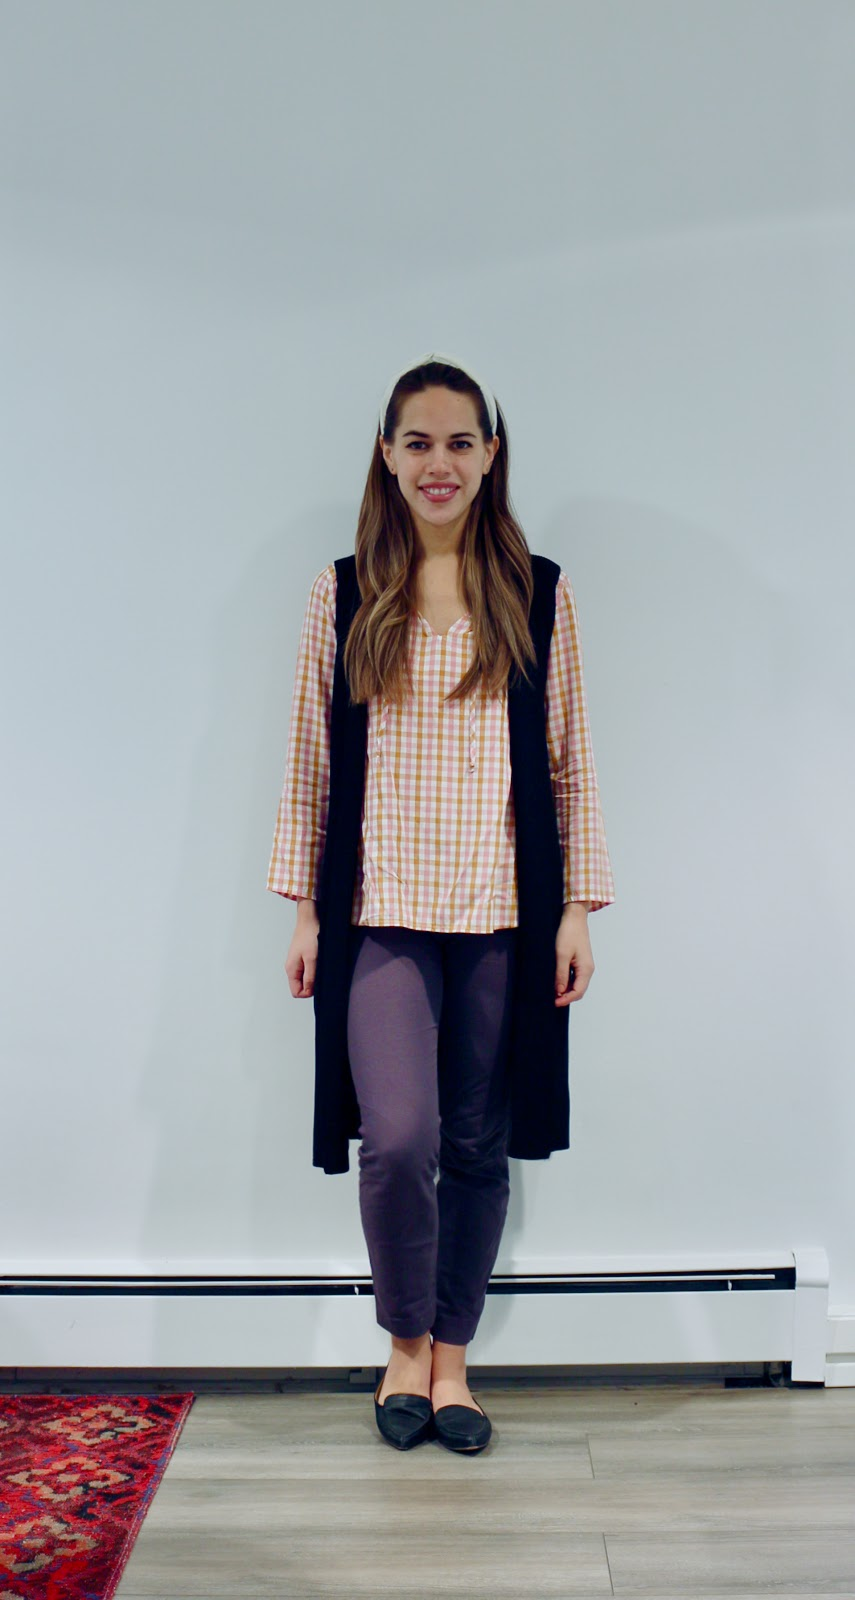 Jules in Flats - Old Navy Plaid Top with Knit Duster Vest (Business Casual Fall Workwear on a Budget)